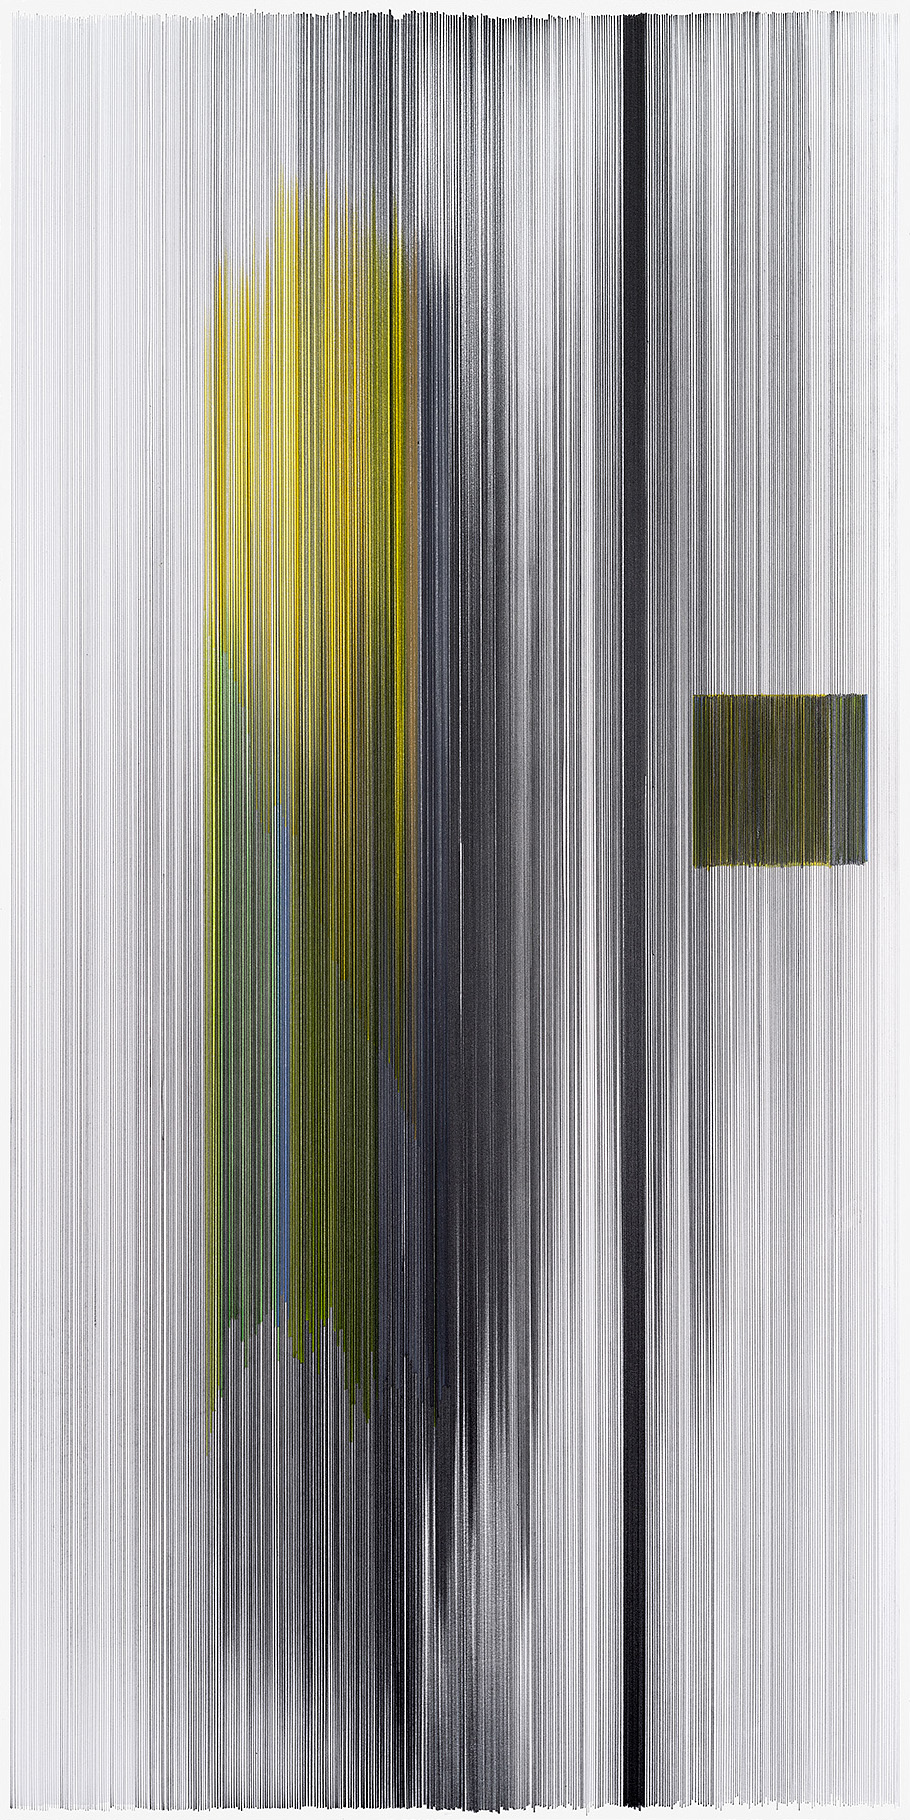 notations 08  2014 graphite & colored pencil on mat board 20 by 40 inches